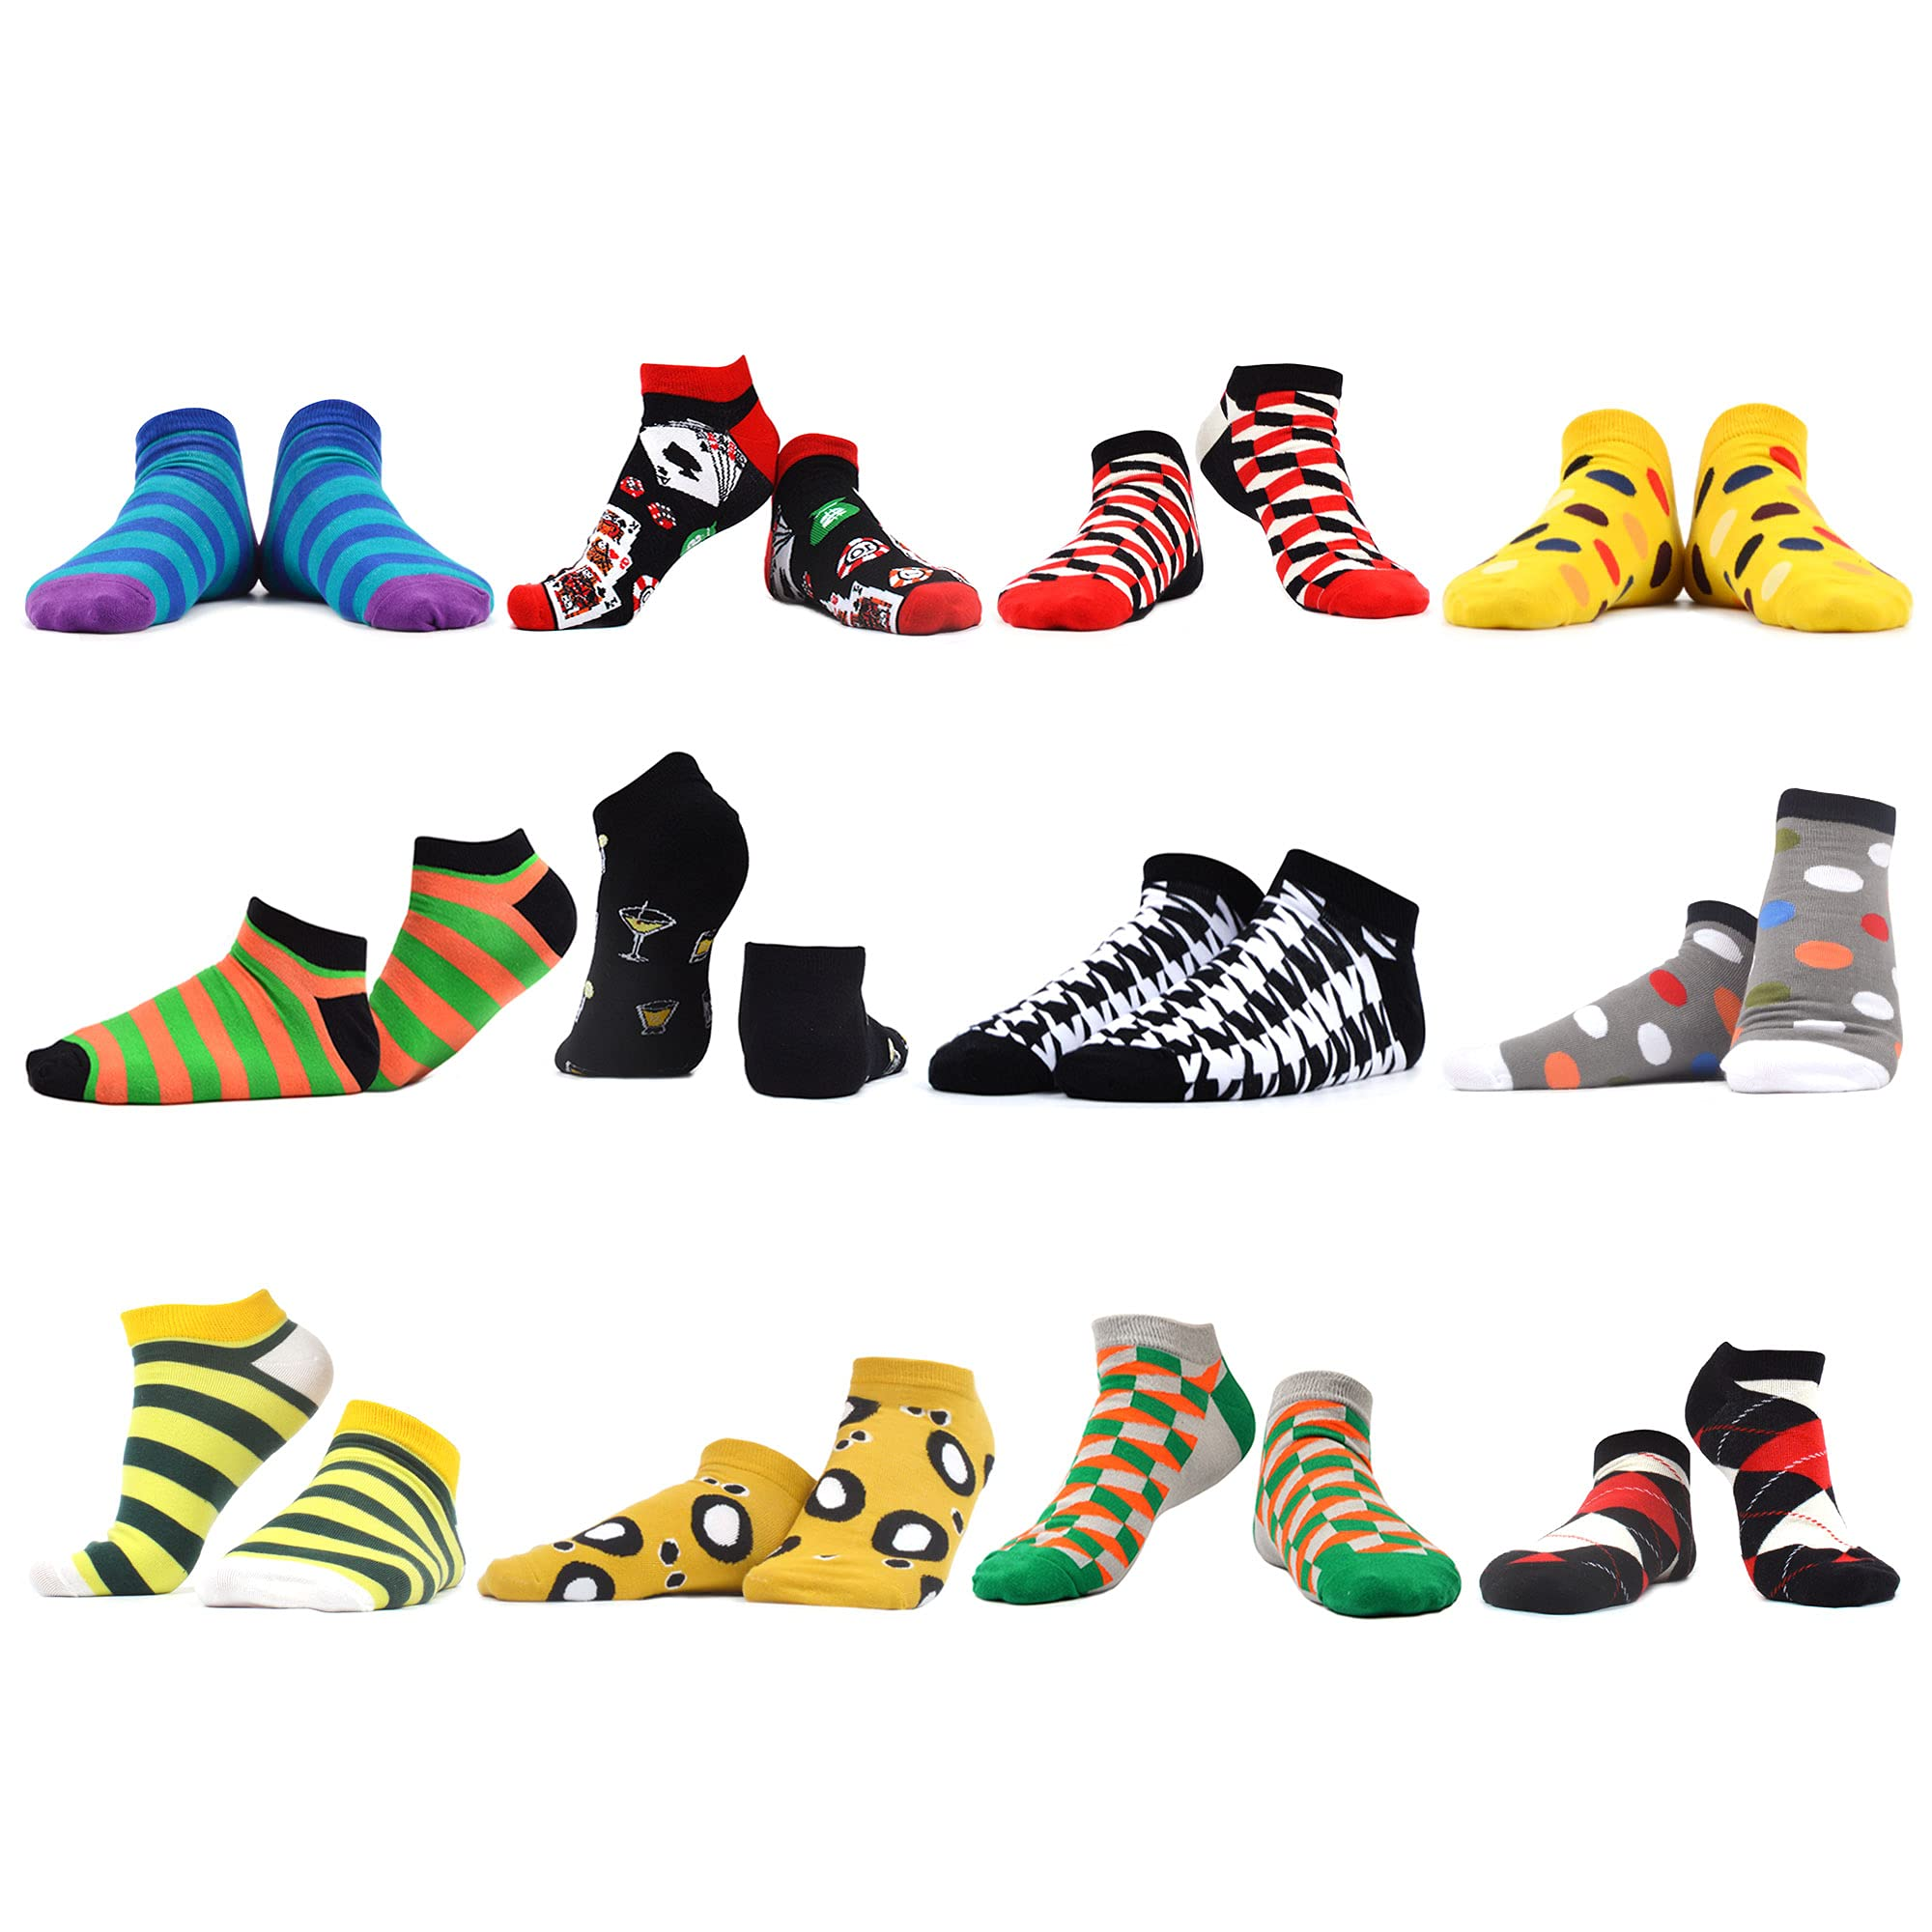 WAZATE Mens Happy Colorful Novelty Funny Socks Casual Invisible Combed Cotton Ankle